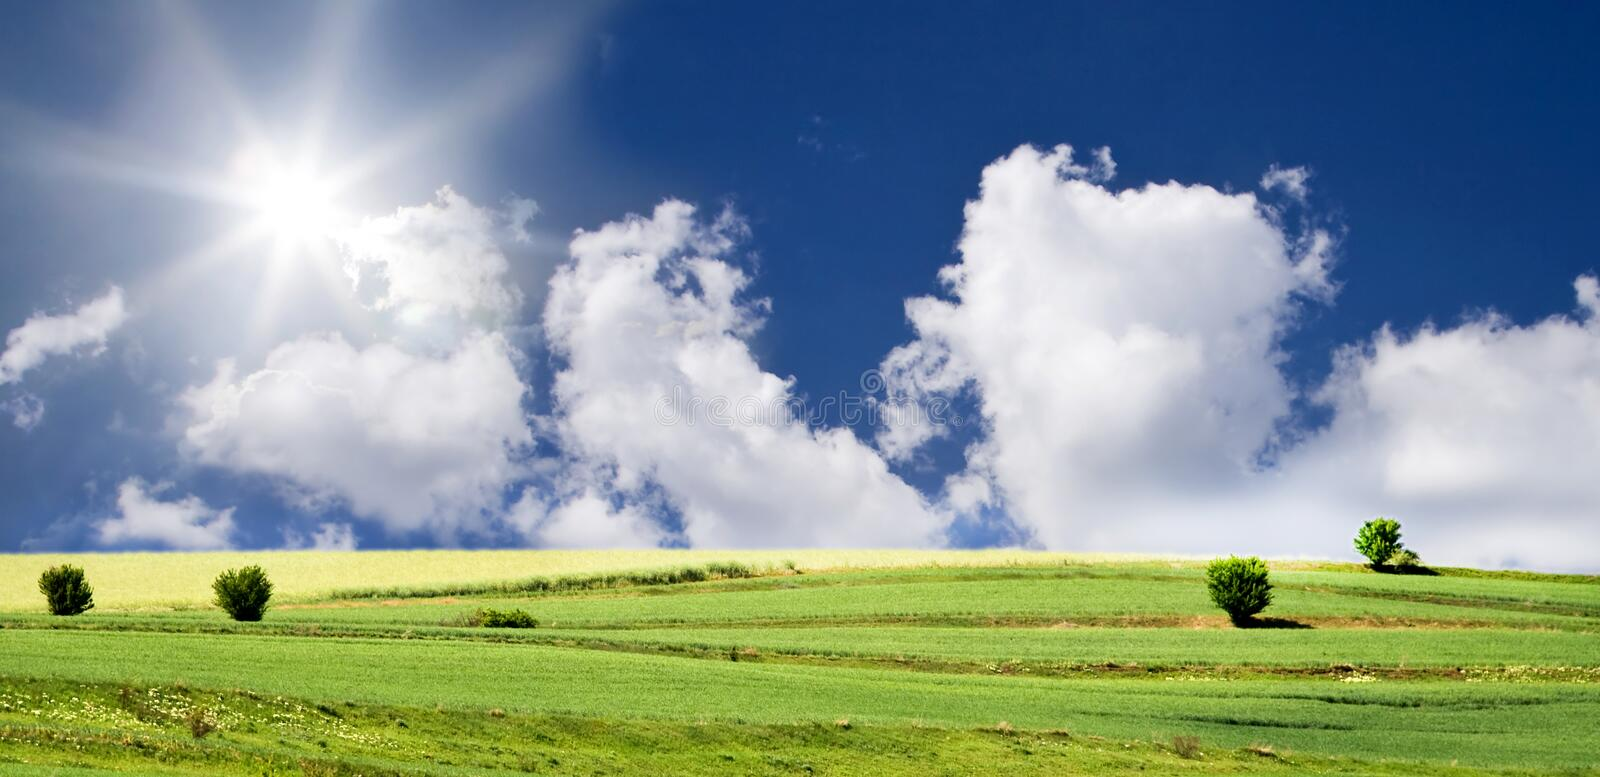 Blue sky and green field royalty free stock photography